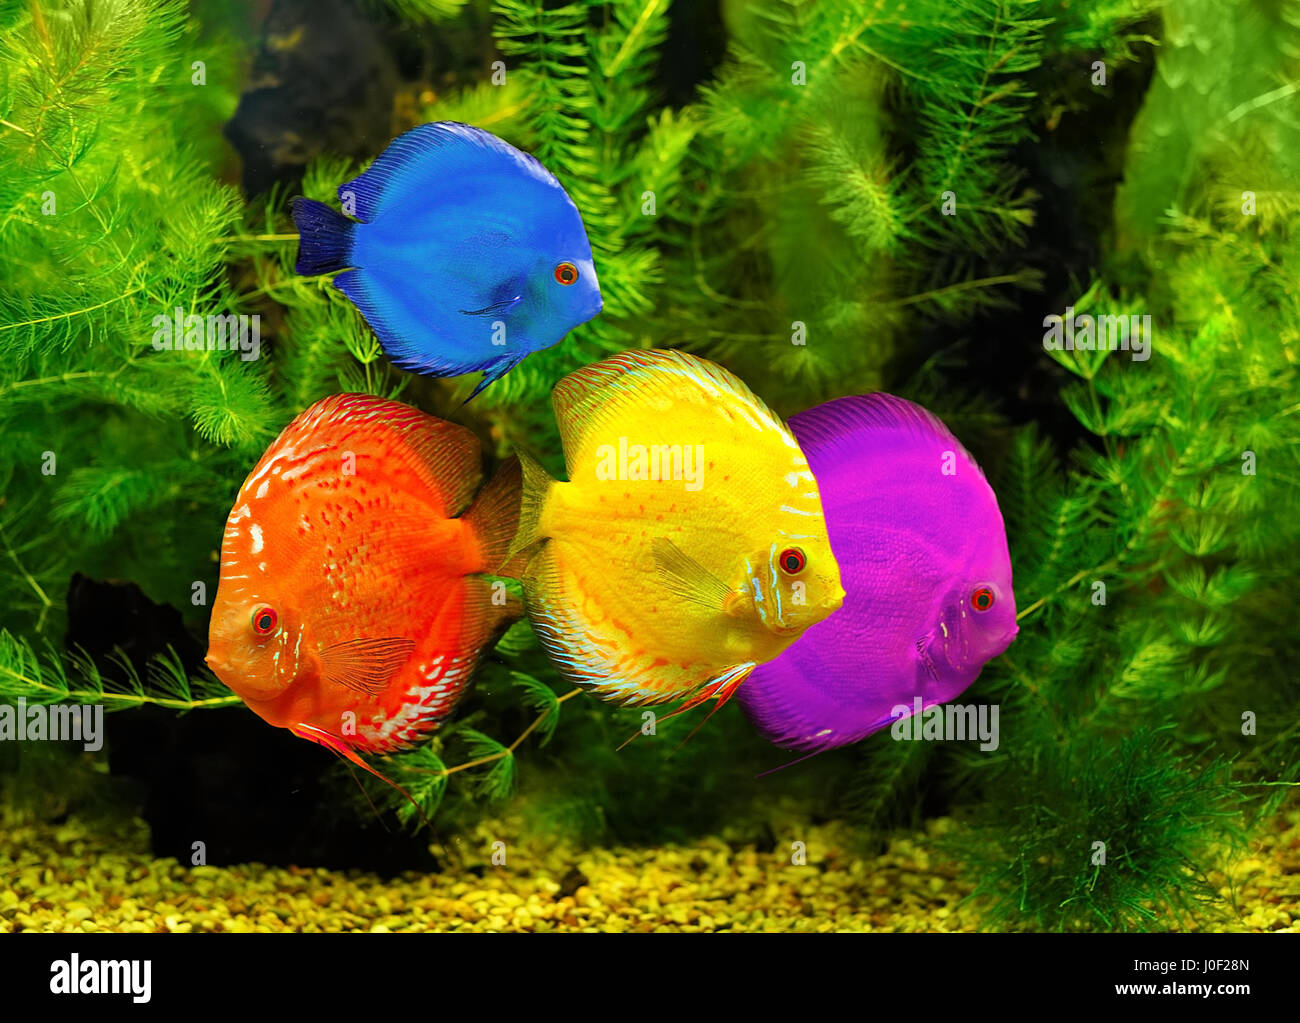 Fishes in different color in water Stock Photo: 138014037 - Alamy